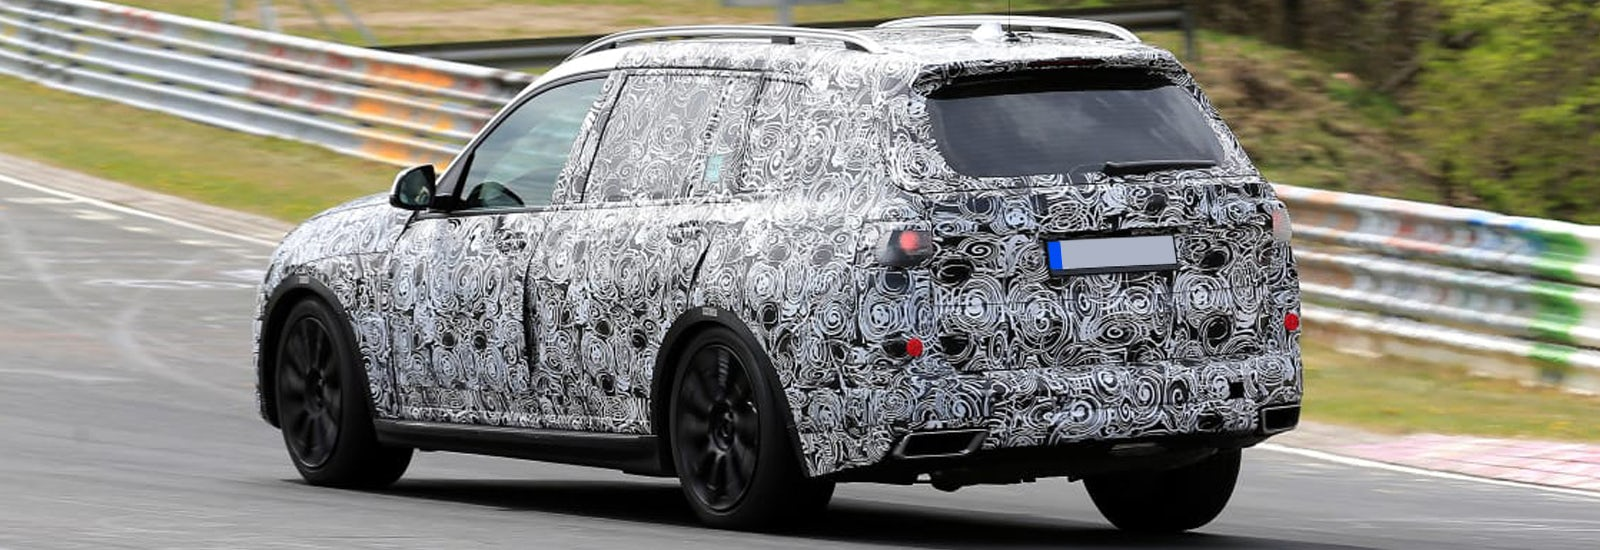 2018 BMW X7 Spied Pictures for Release Date